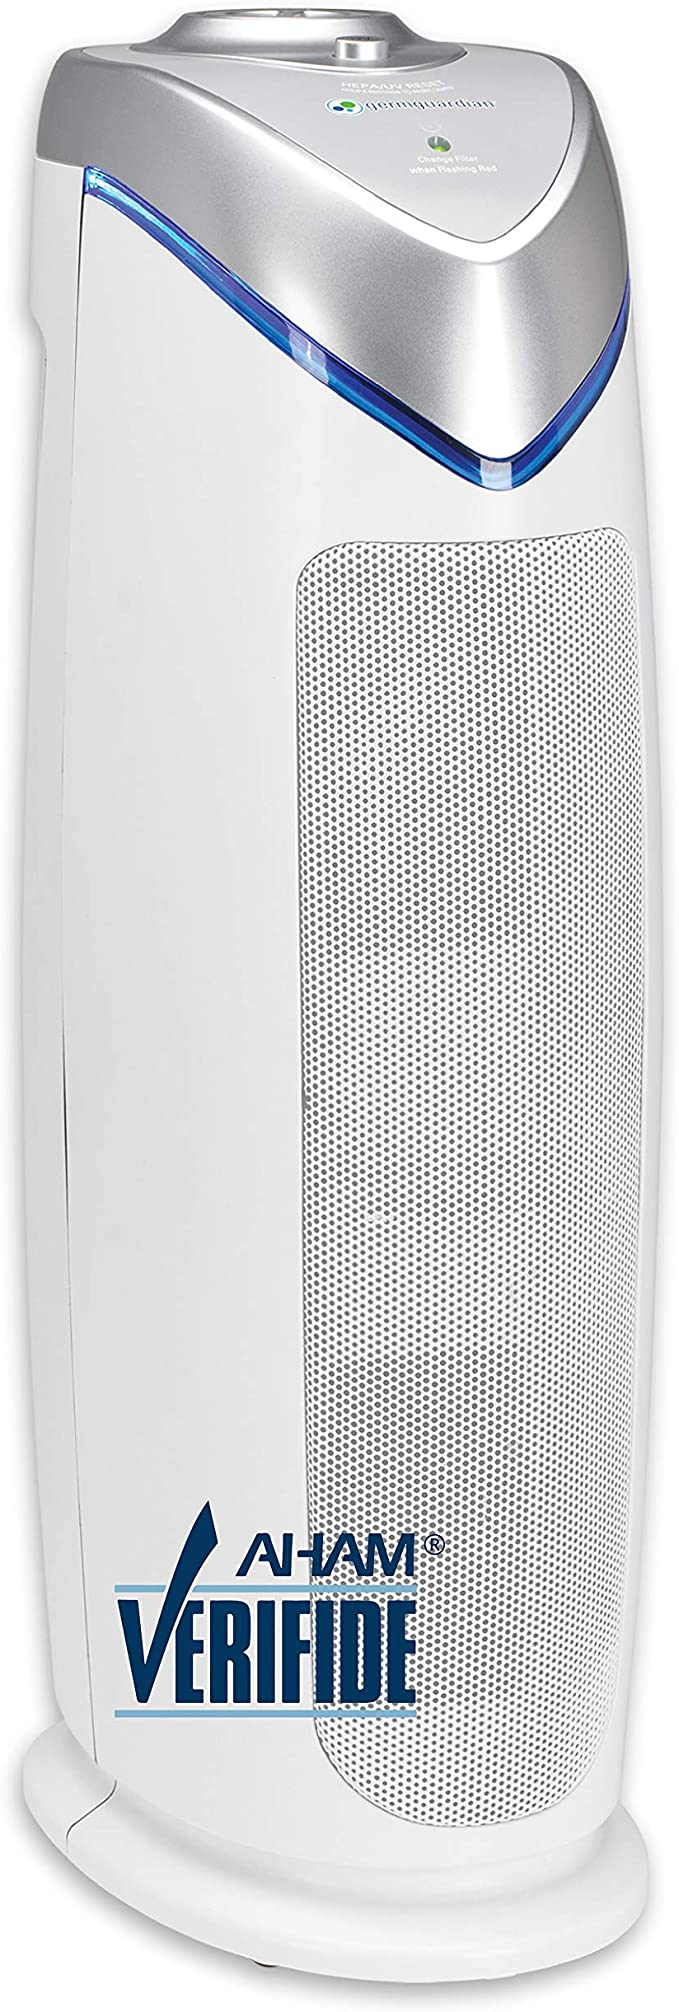 Germ Guardian True HEPA Filter Air Purifier with UV Light Sanitizer, Eliminates Germs, Filters Allergies,